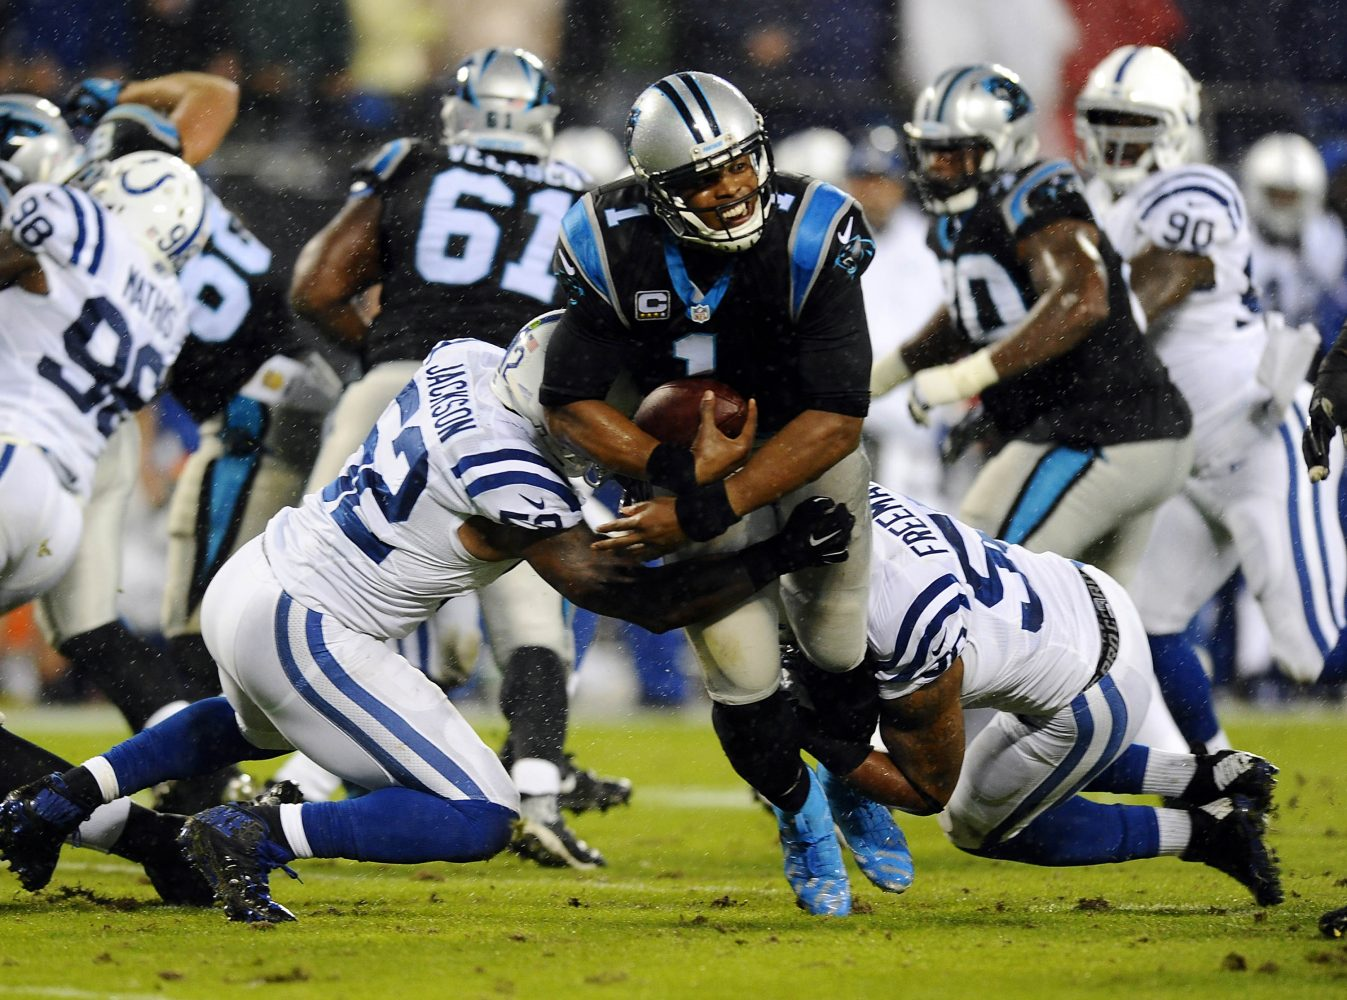 Carolina Panthers Cam Newton (1) breaks past Indianapolis Colts DQwell Jackson (52) and Jerrell Freeman (50) for a first down during the first quarter on Monday, Nov. 2, 2015, at Bank of America Stadium in Charlotte, N.C. (David T. Foster III/Charlotte Observer/TNS)